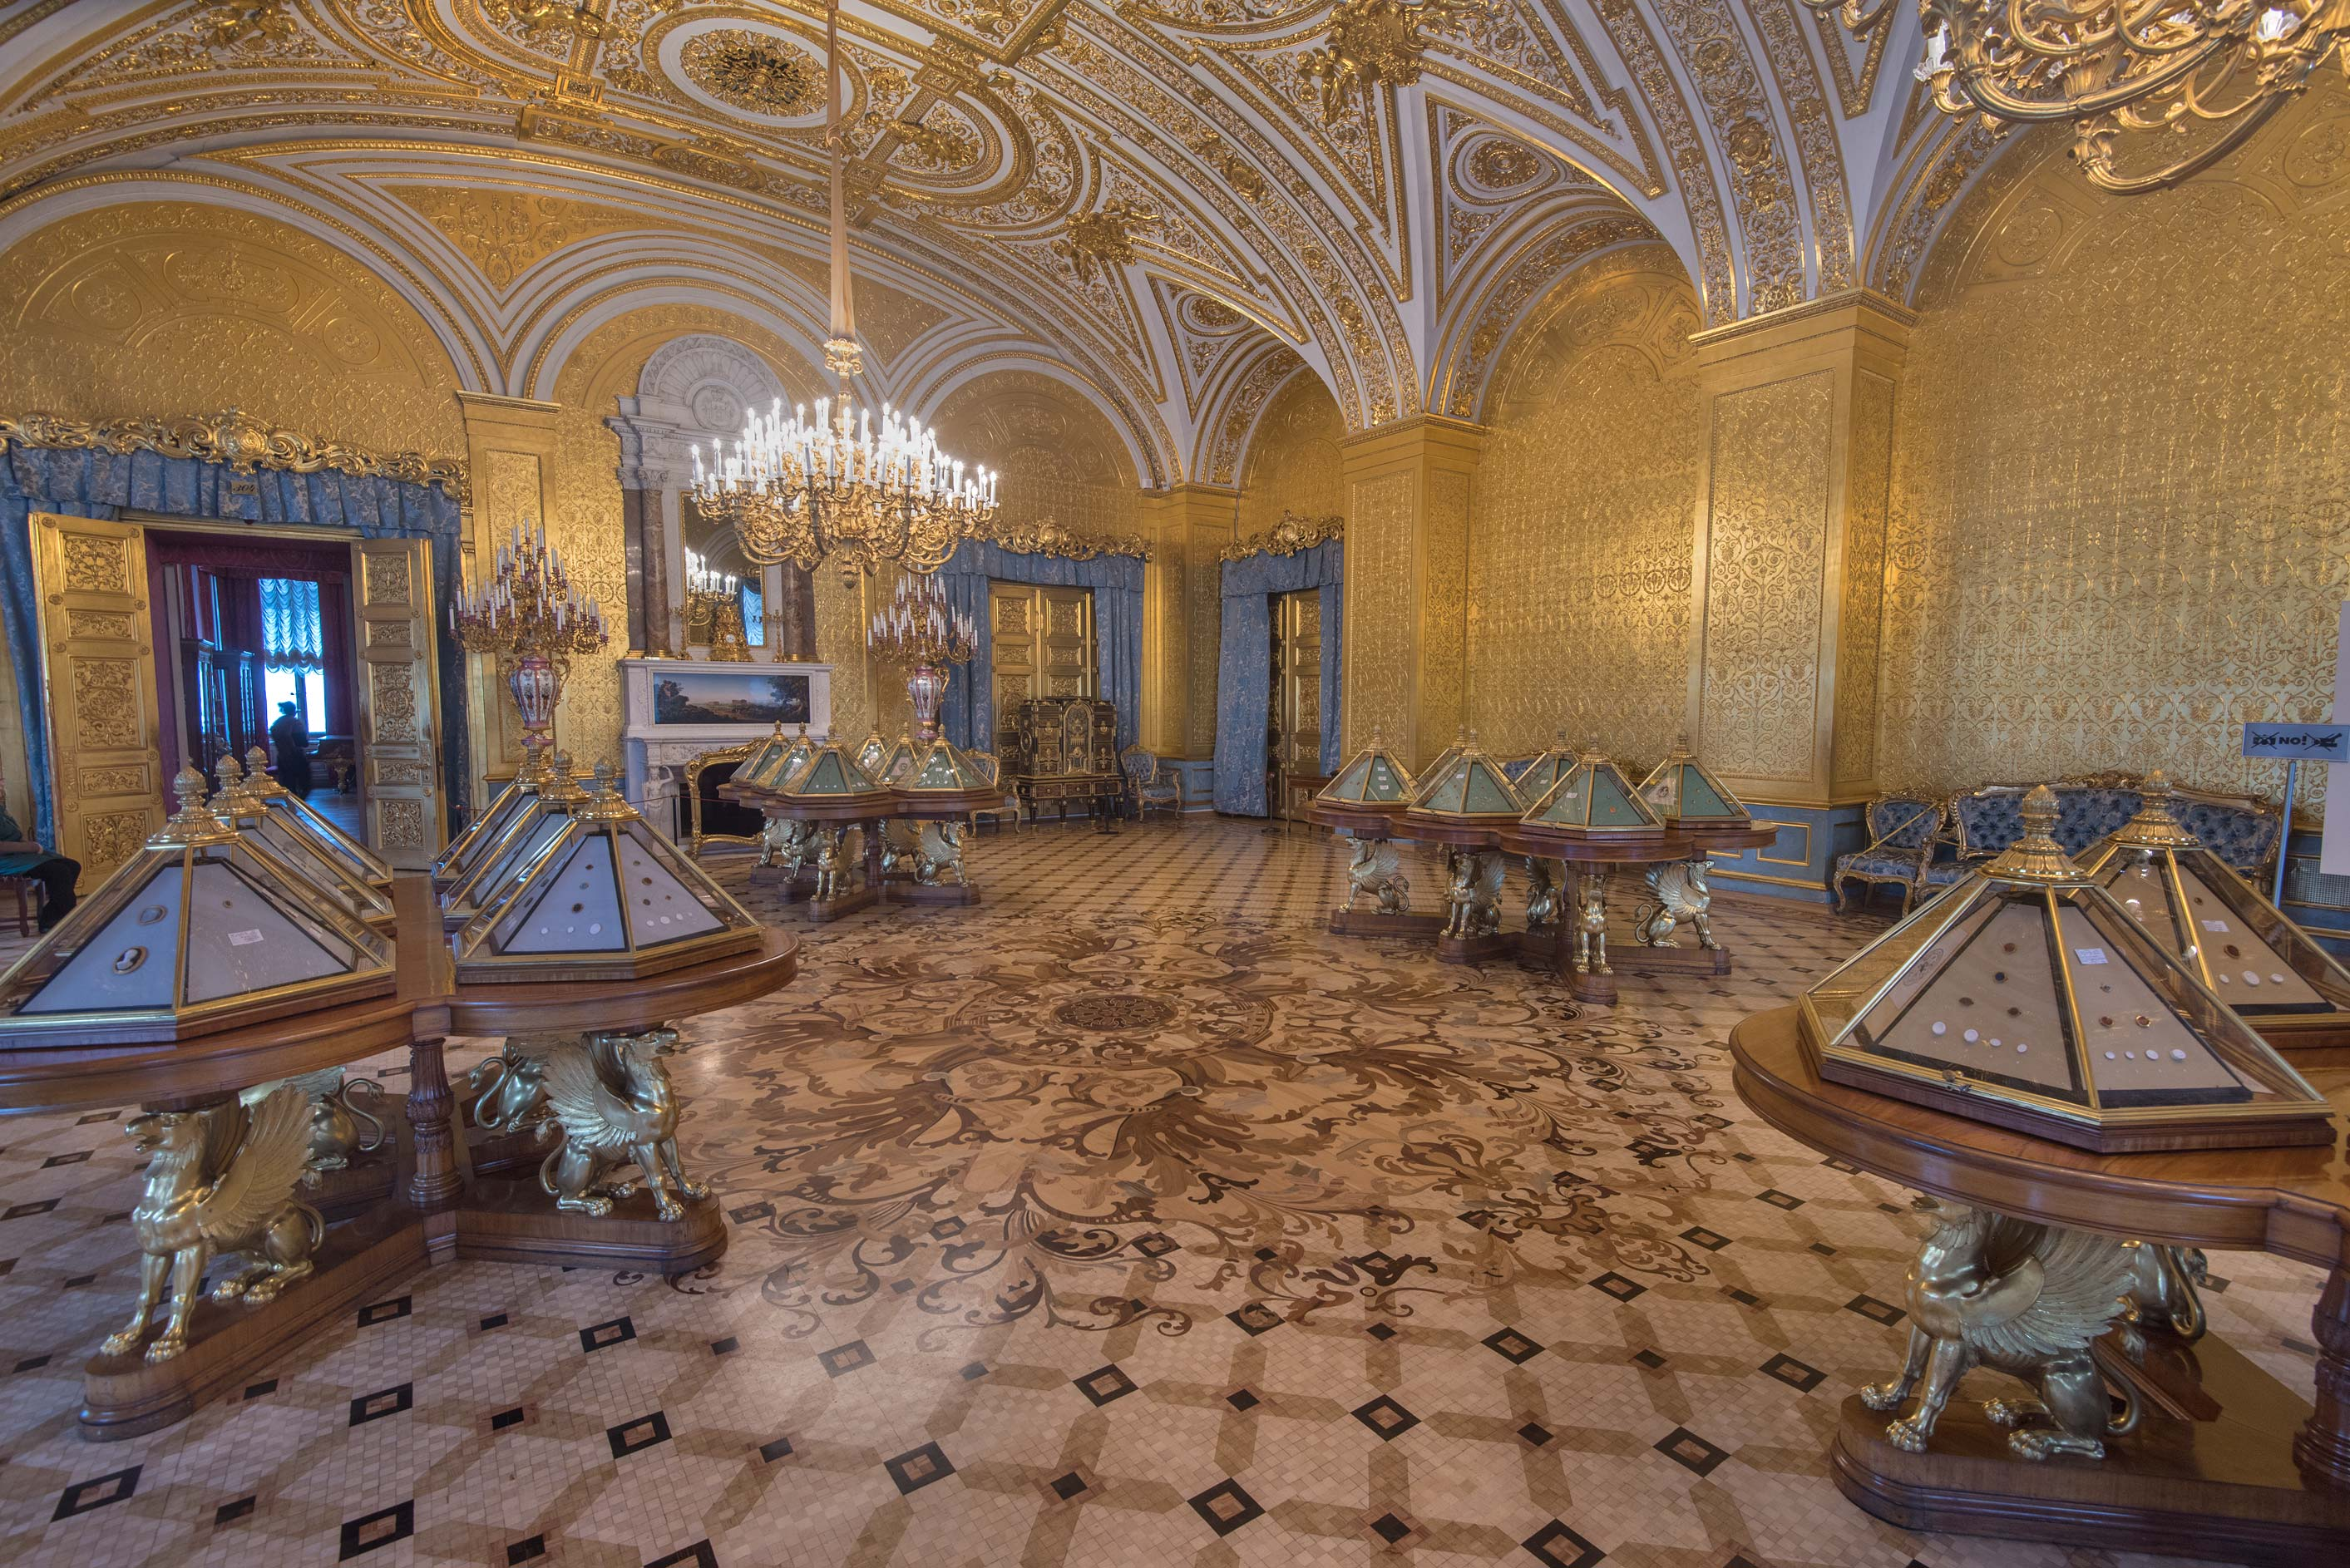 Parquet of gold drawing room in Hermitage Museum. St.Petersburg, Russia